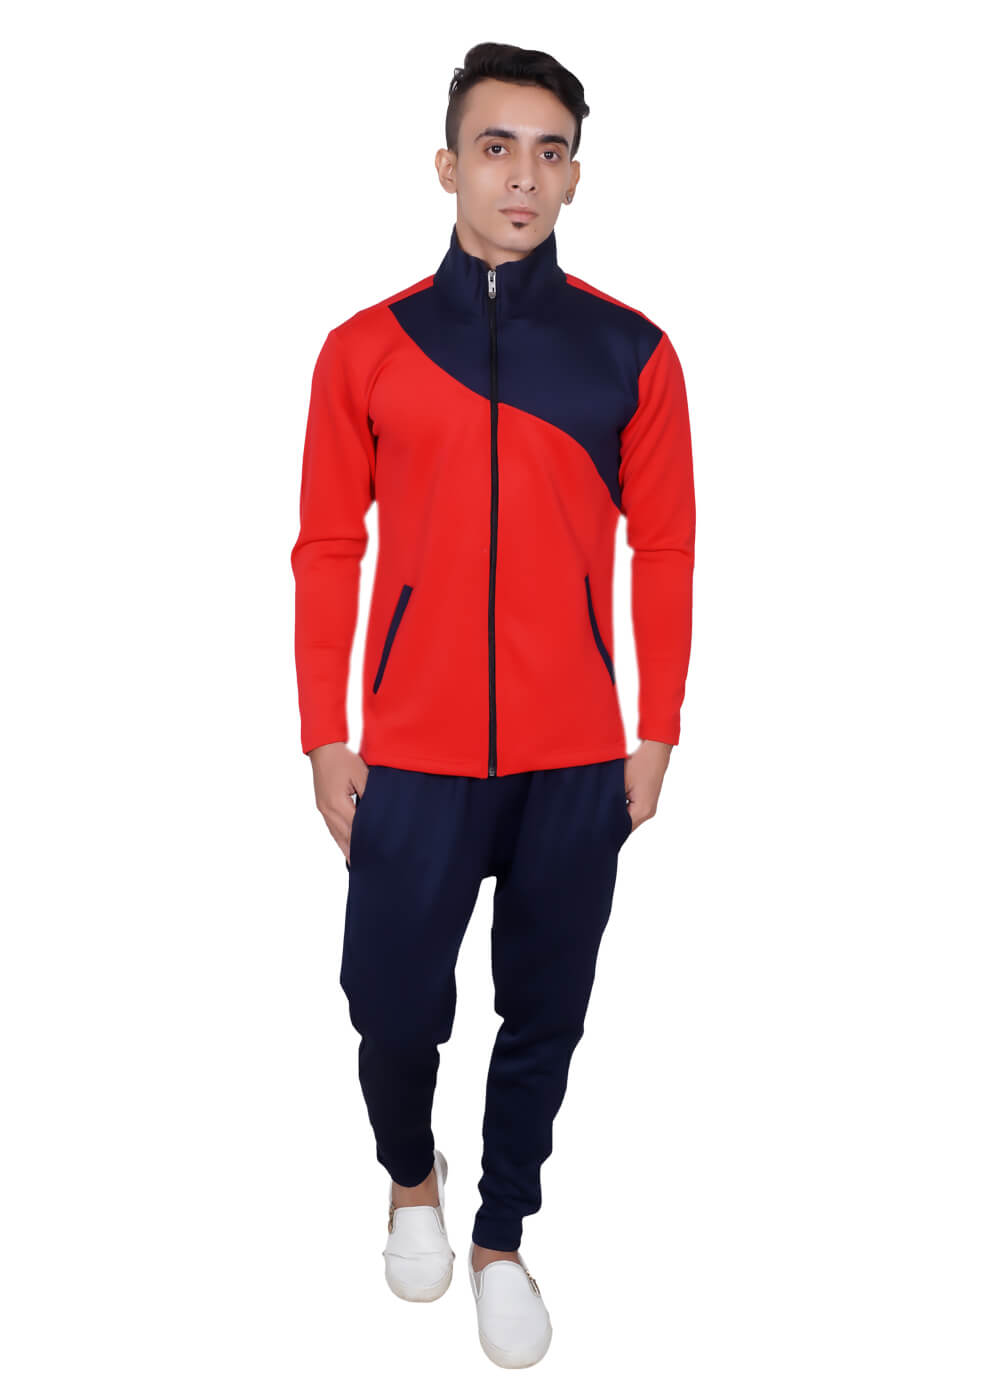 Cheap Tracksuits Manufacturers in Jalandhar in Algeria